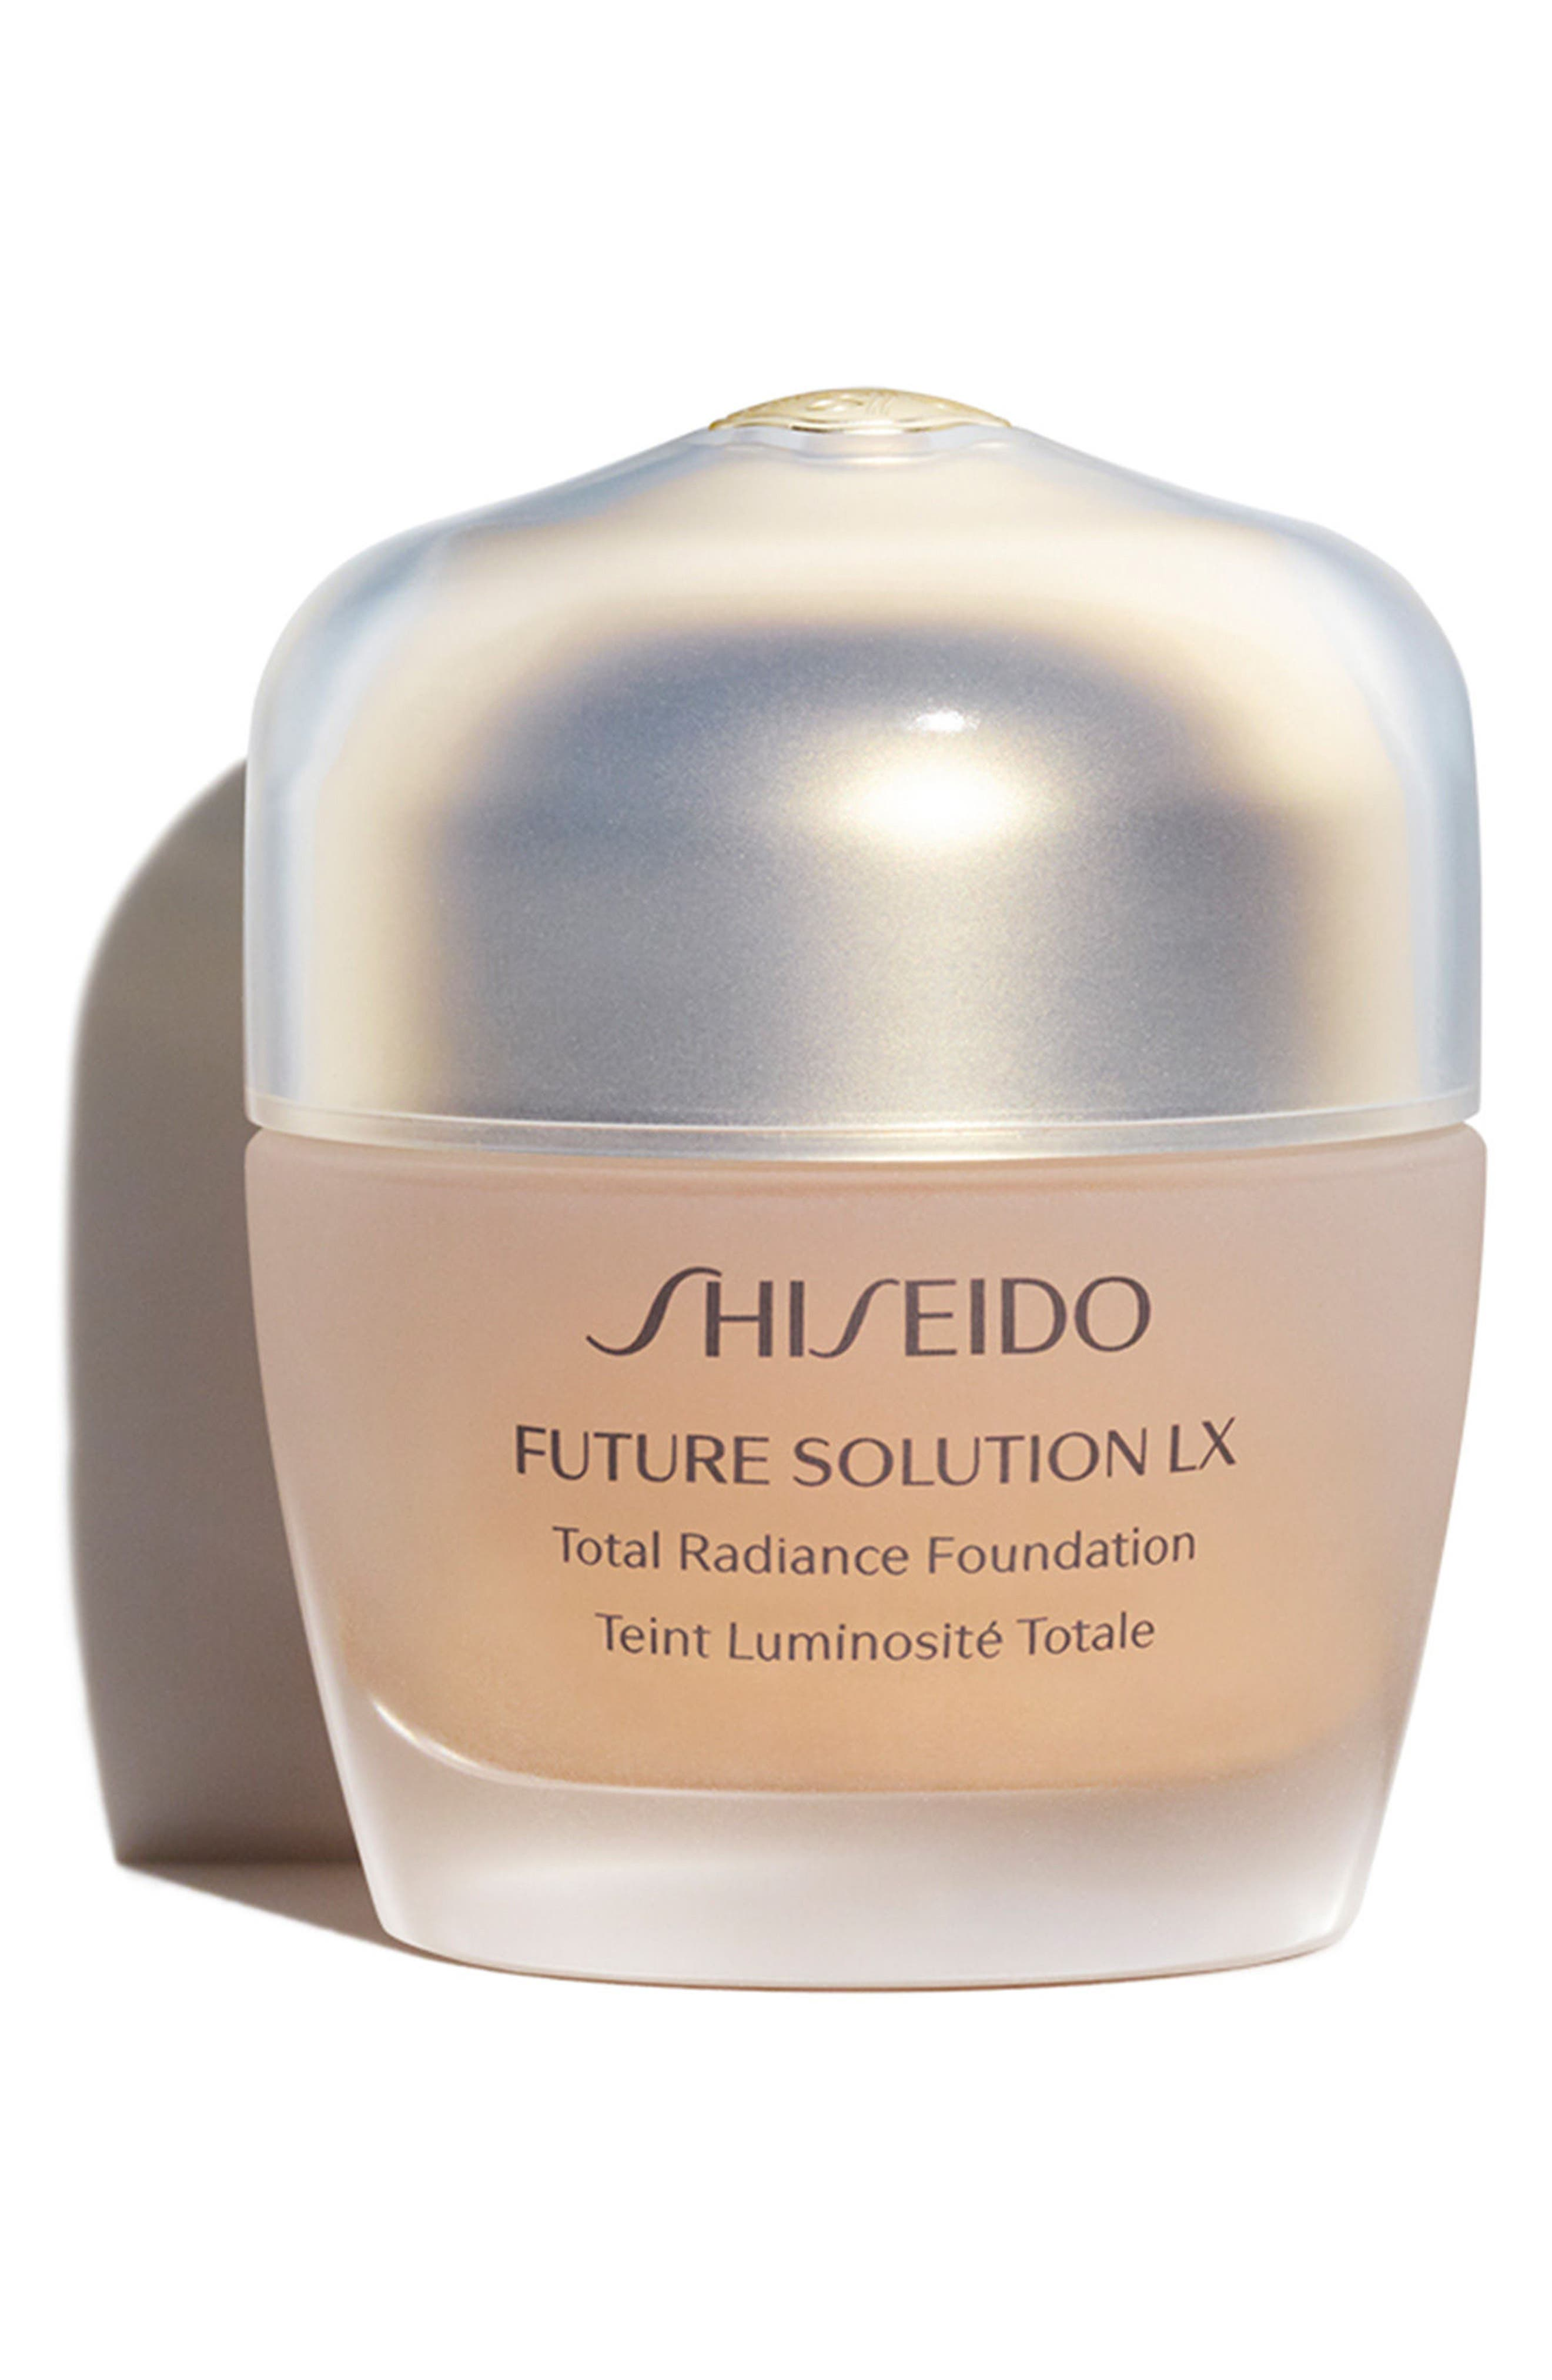 Future Solution LX Total Radiance Foundation Broad Spectrum SPF 20 Sunscreen,                             Main thumbnail 1, color,                             GOLDEN 3